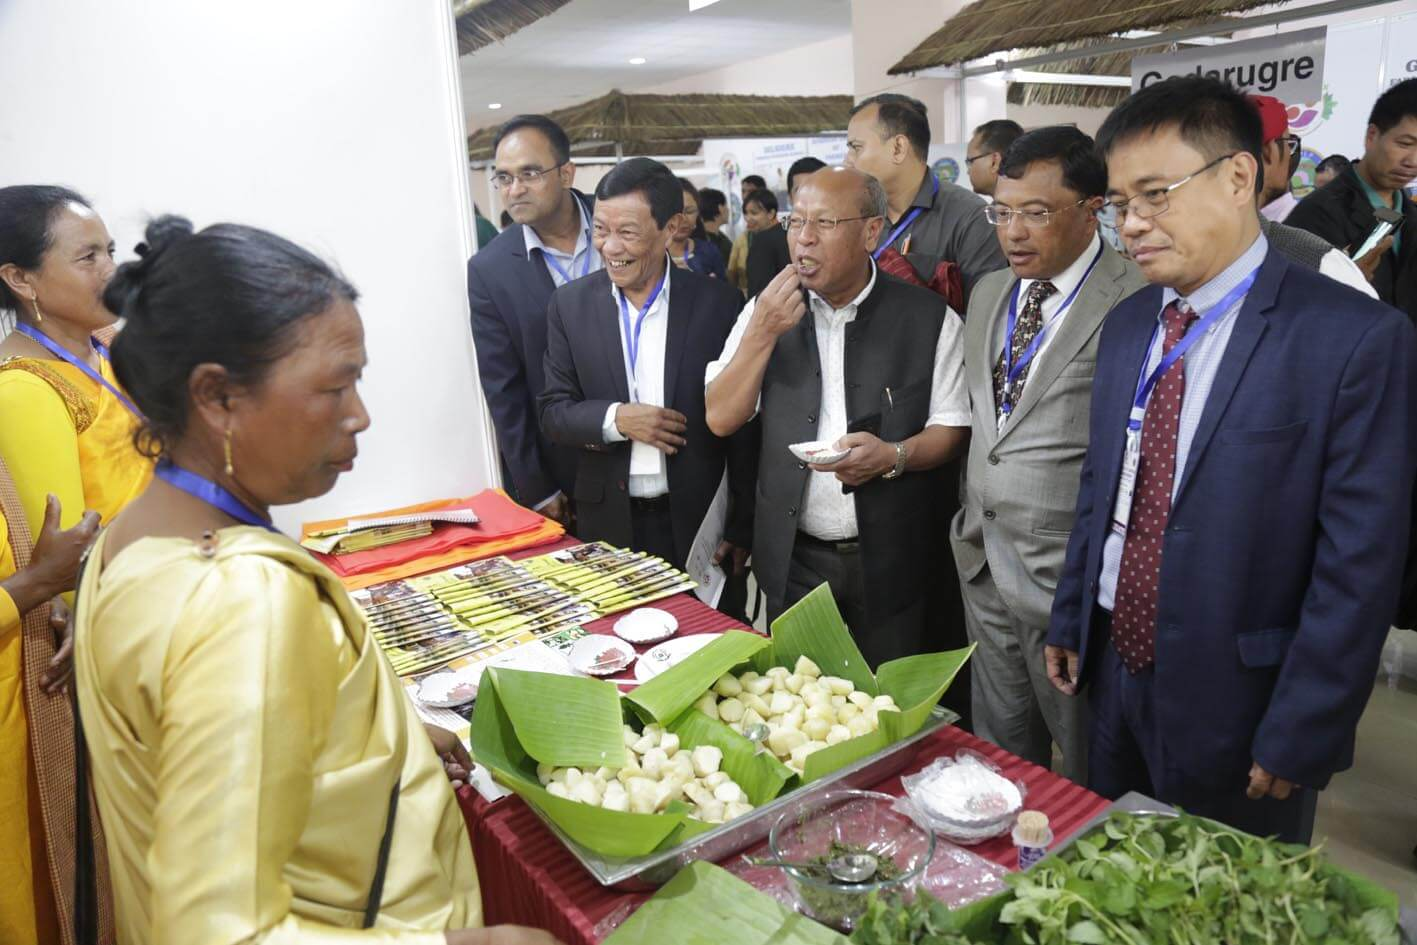 Six food organizations from Farmer Business School ( FBS) launched